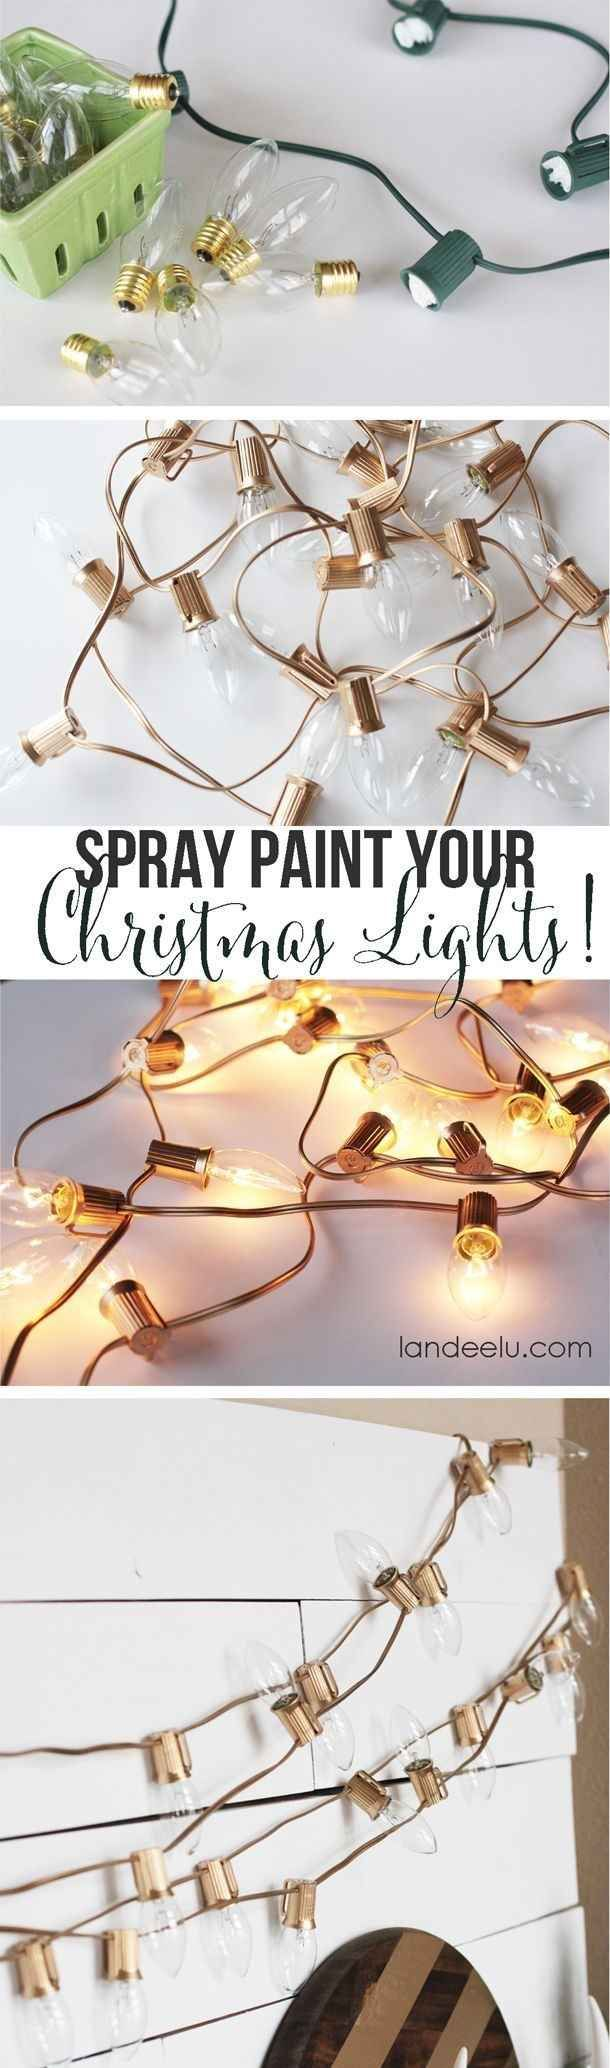 Icicle christmas lights bedroom - Best 25 Christmas Lights In Bedroom Ideas Only On Pinterest Christmas Lights Room Christmas Lights Bedroom And White Lights Bedroom